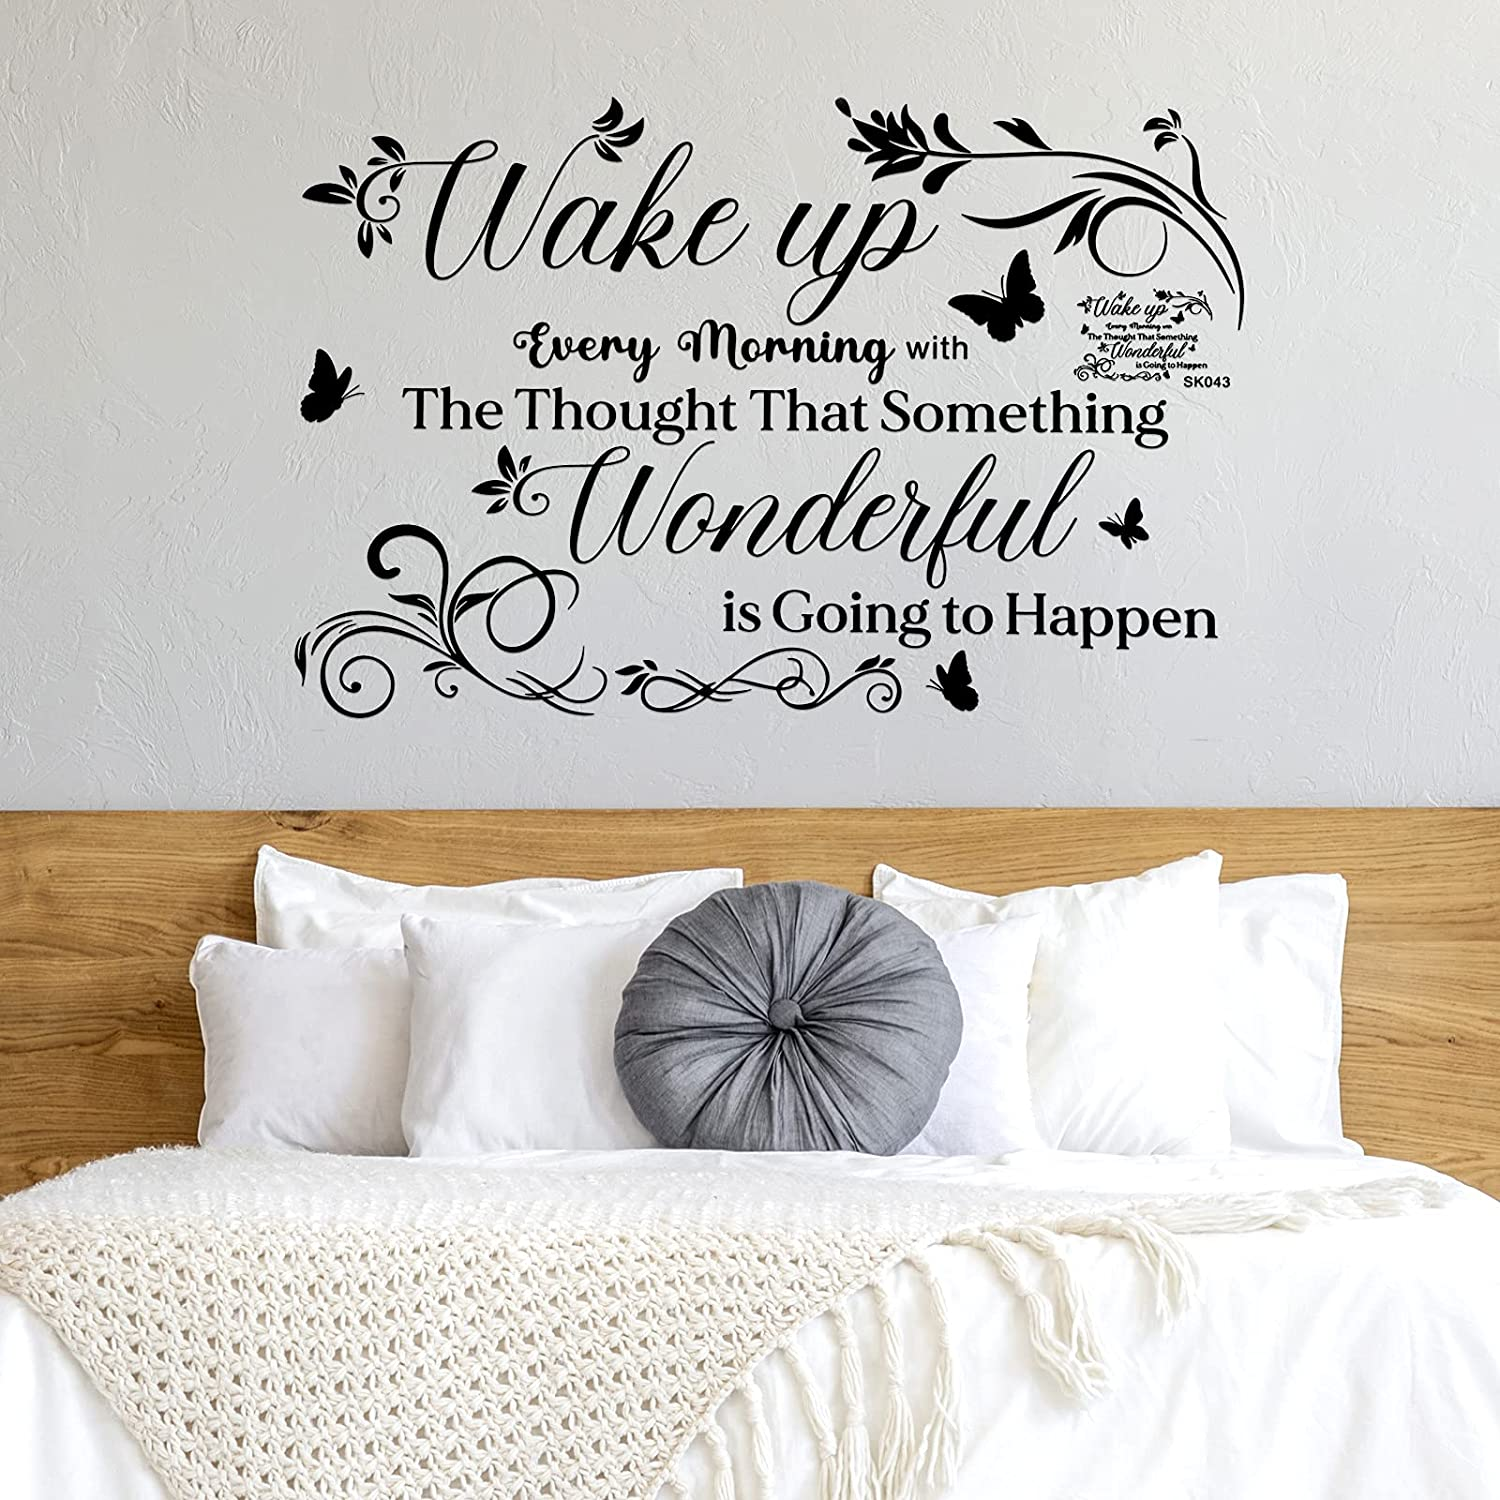 Inspirational Wall Decals for Bedroom Vinyl Letter Wall Sticker Motivational Saying Quotes Wake up Every Morning with The Thought That Something Wonderful is Going to Happen for Kitchen Home Decor